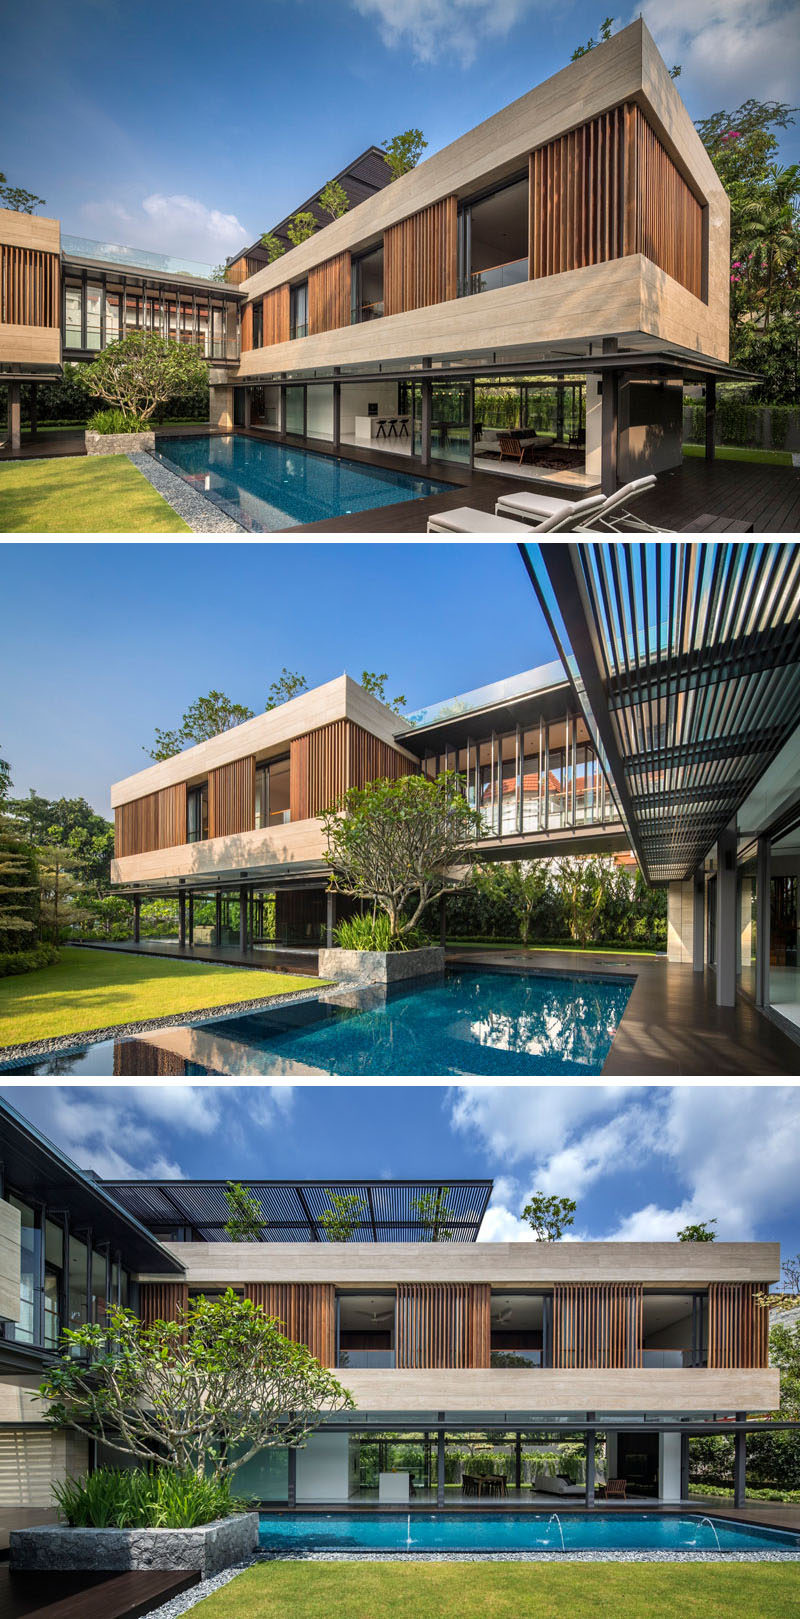 This Singaporean home has a lush garden, swimming pool, and a top floor wrapped in wooden louvers.